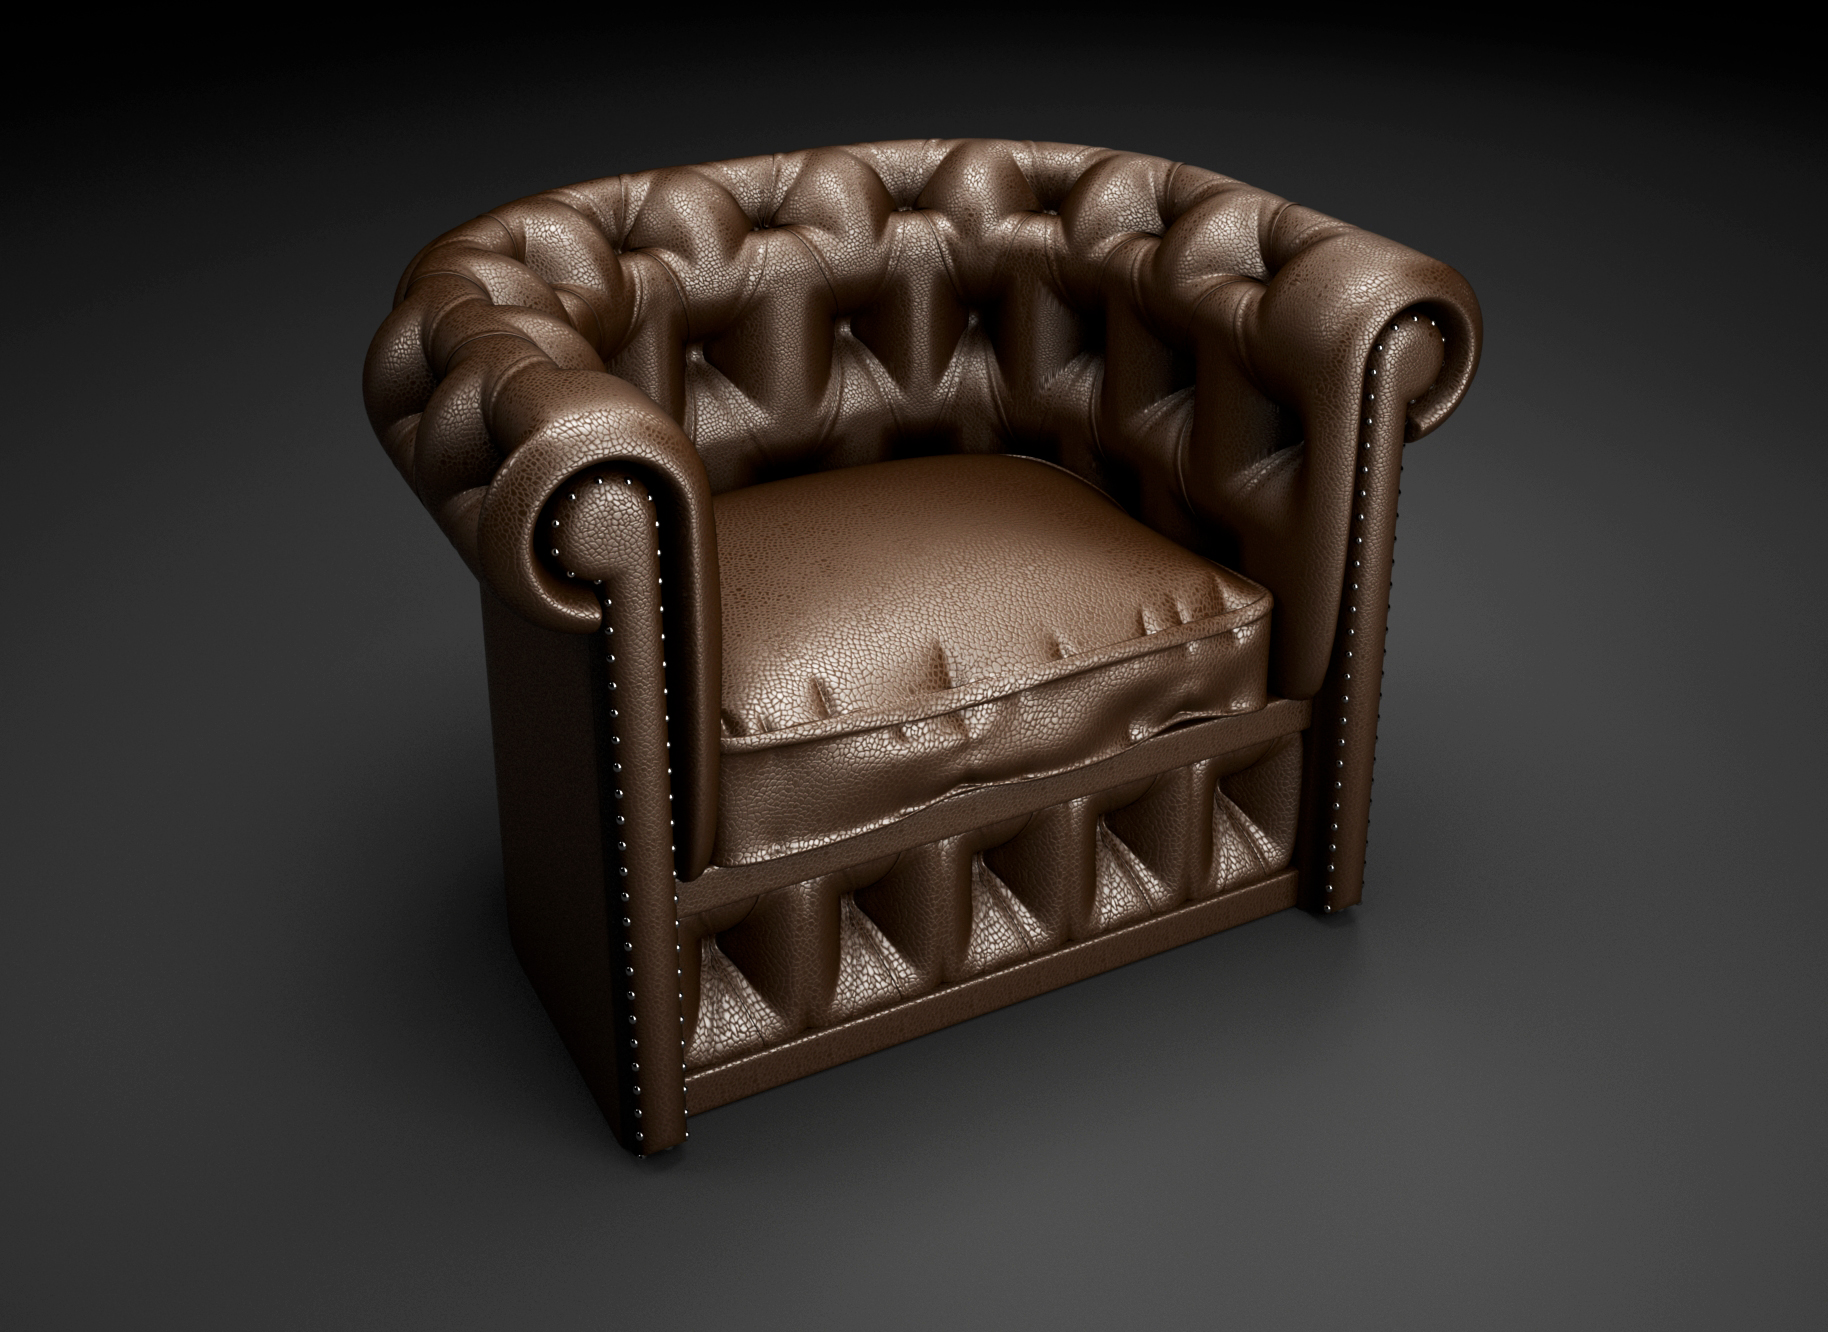 Object renders 3D model - Chesterfield chair